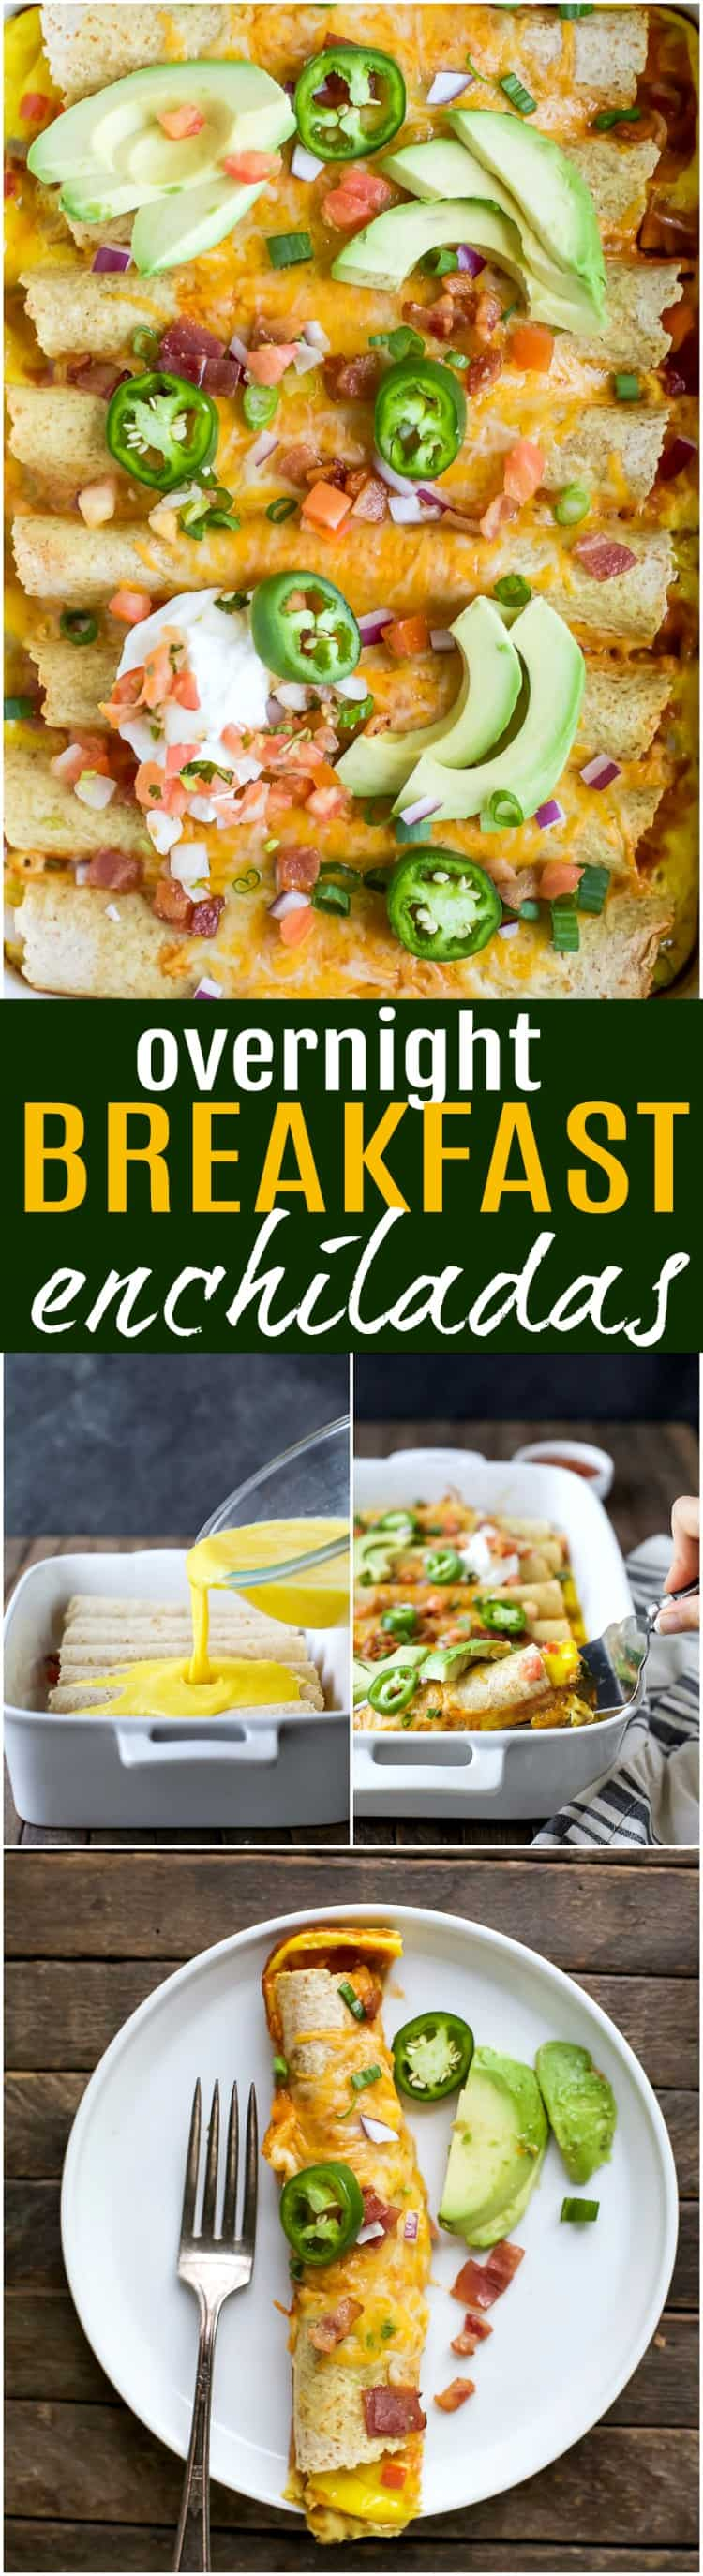 Easy Cheesy Overnight Breakfast Enchiladas filled with bacon, ham, veggies and an egg mixture. Make it the night before and bake in the morning! A delicious savory breakfast recipe perfect for brunch or the holidays!